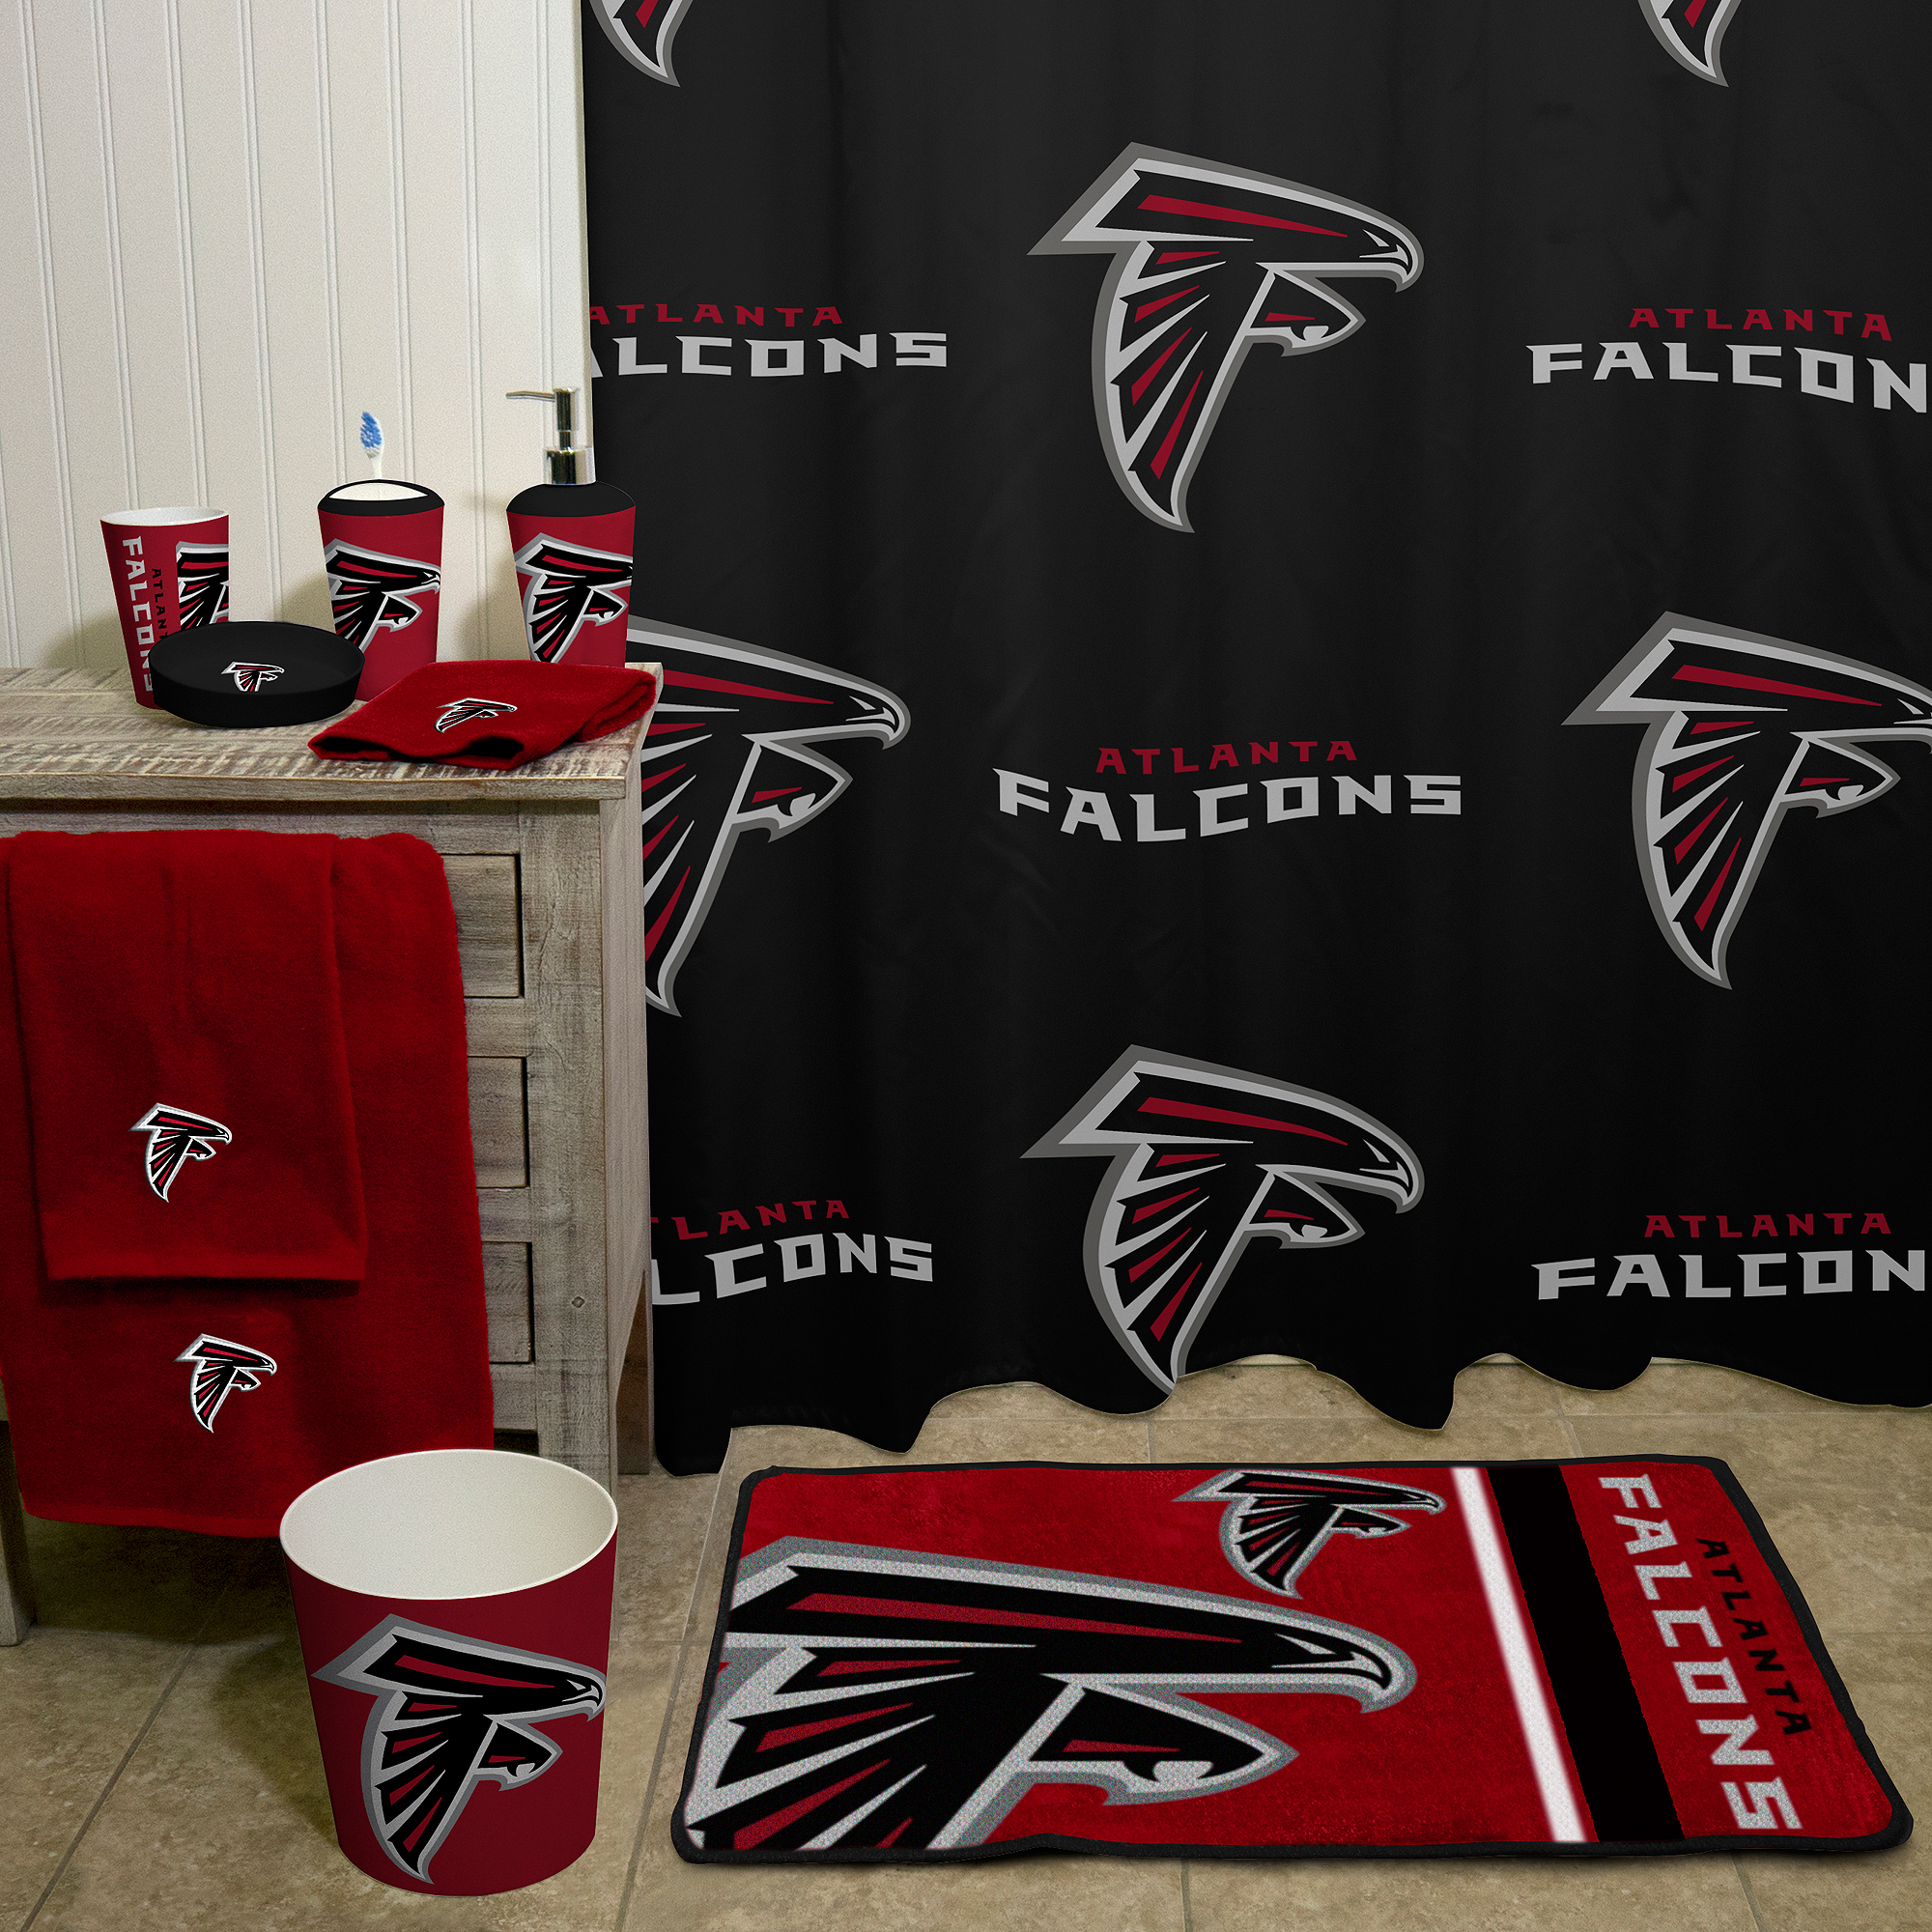 & NFL Atlanta Falcons 20